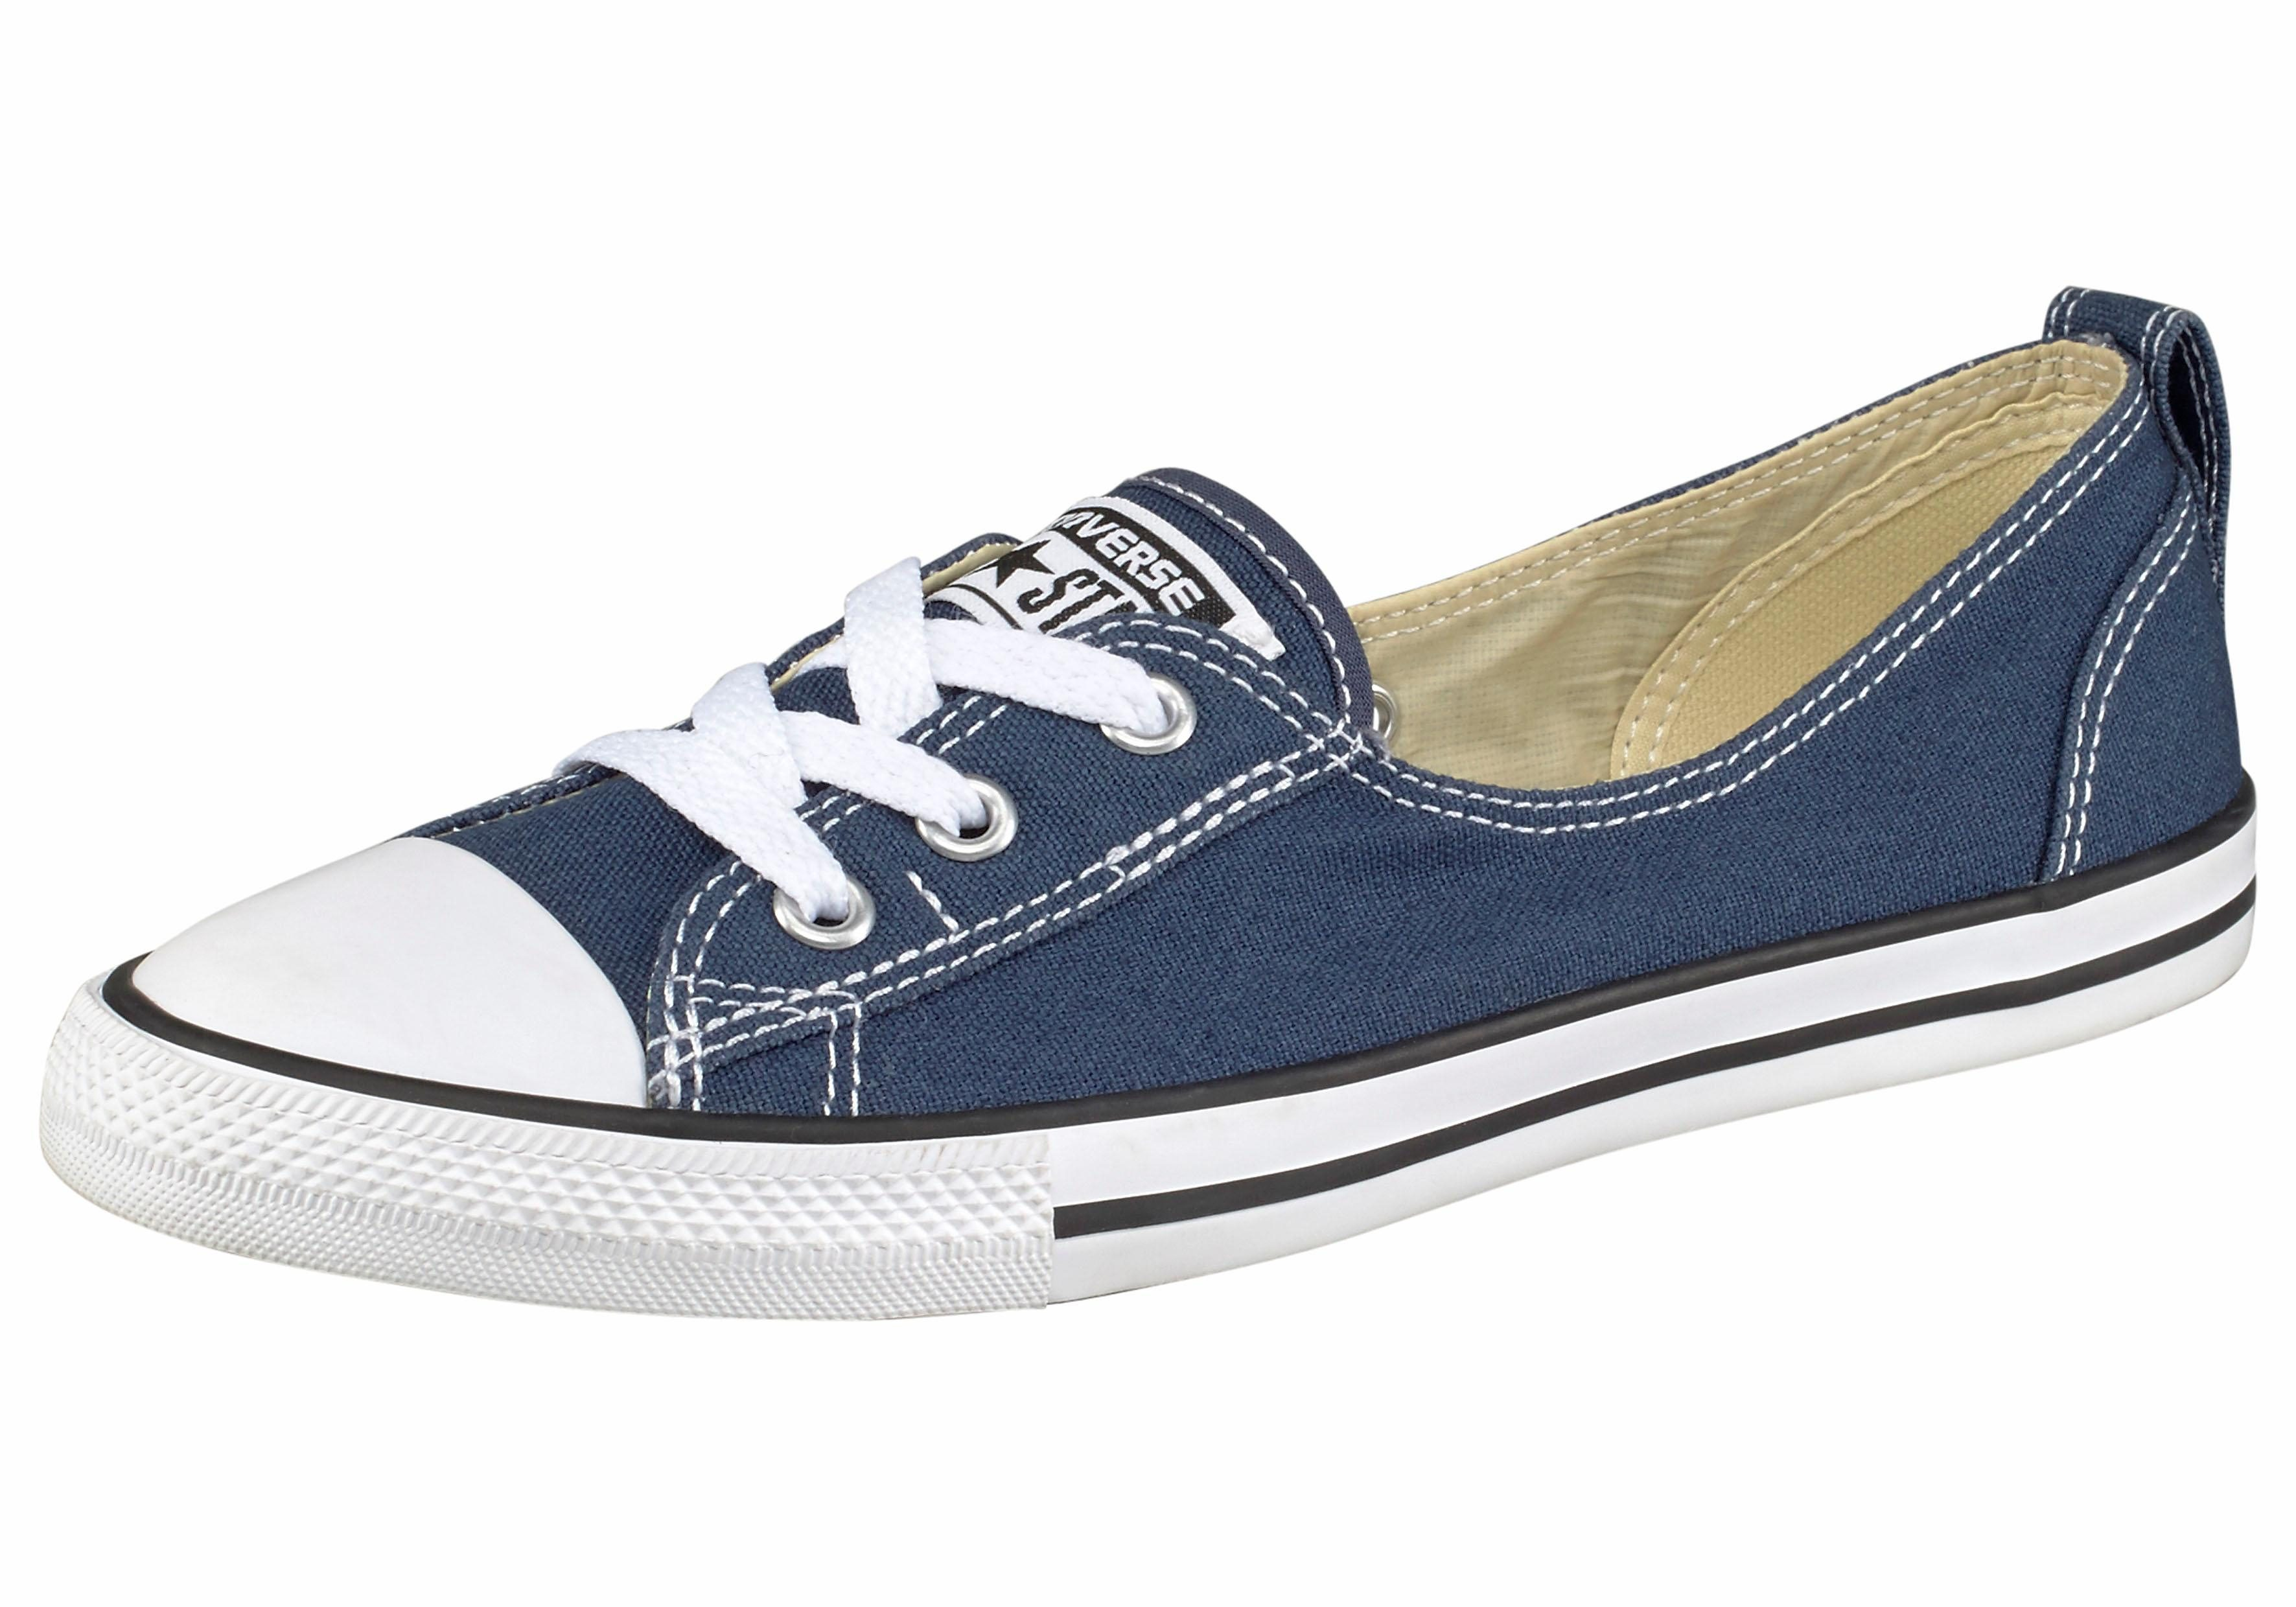 Converse »Chuck Taylor All Star Ballet Lace Ox« Sneaker online kaufen | OTTO